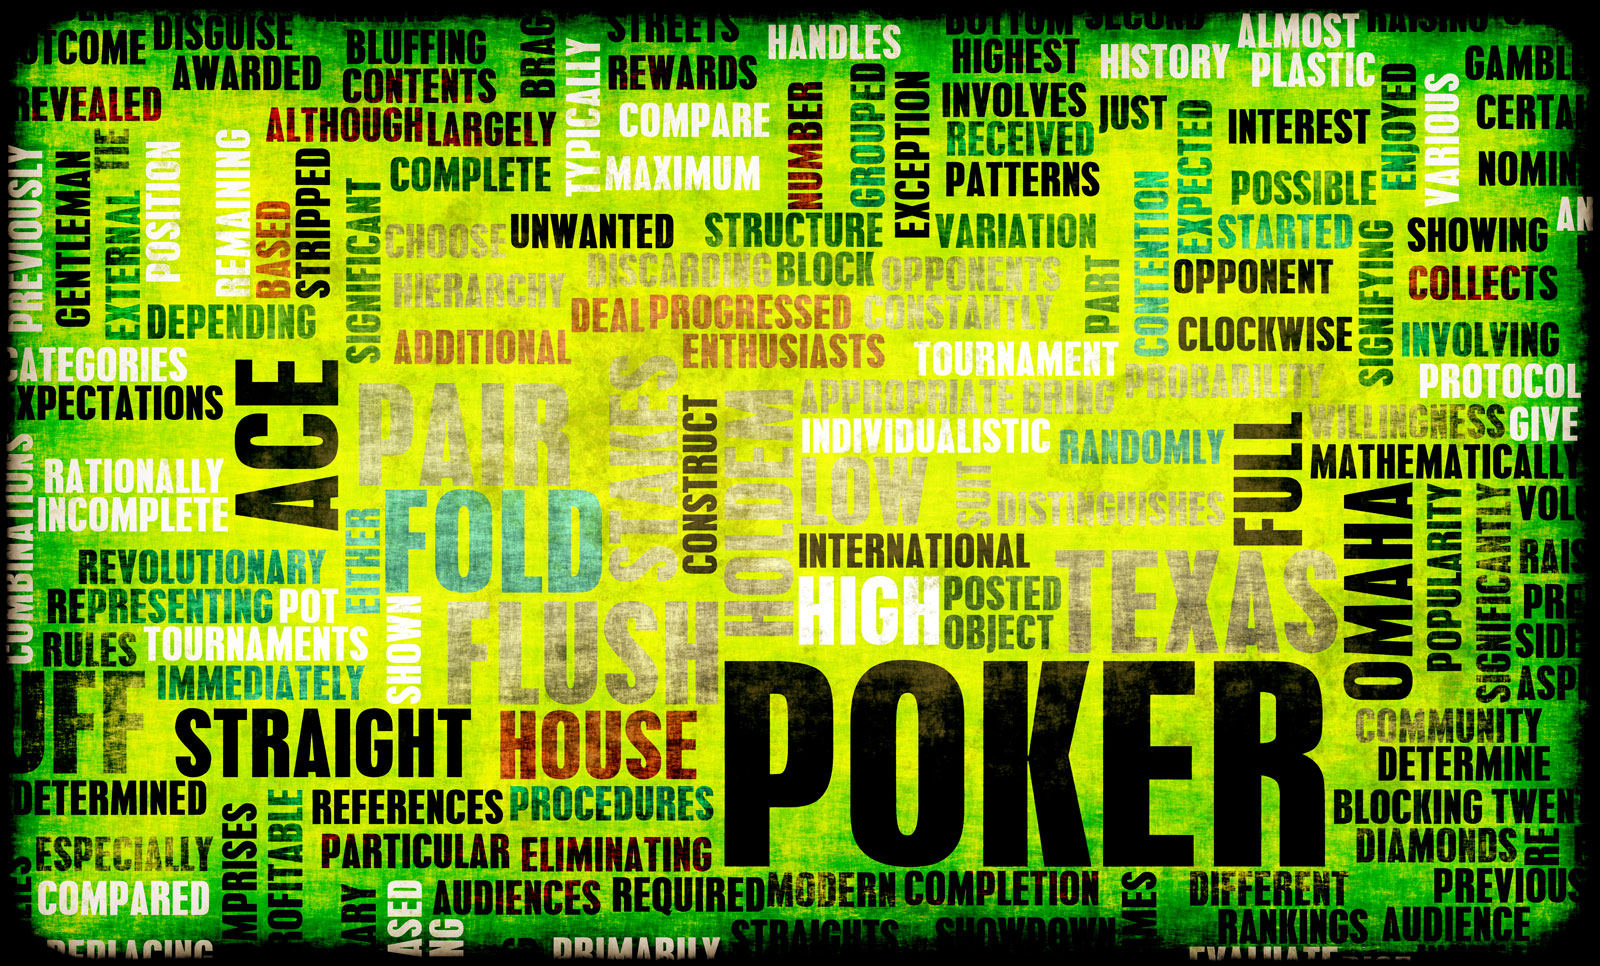 Casino Terms Dictionary